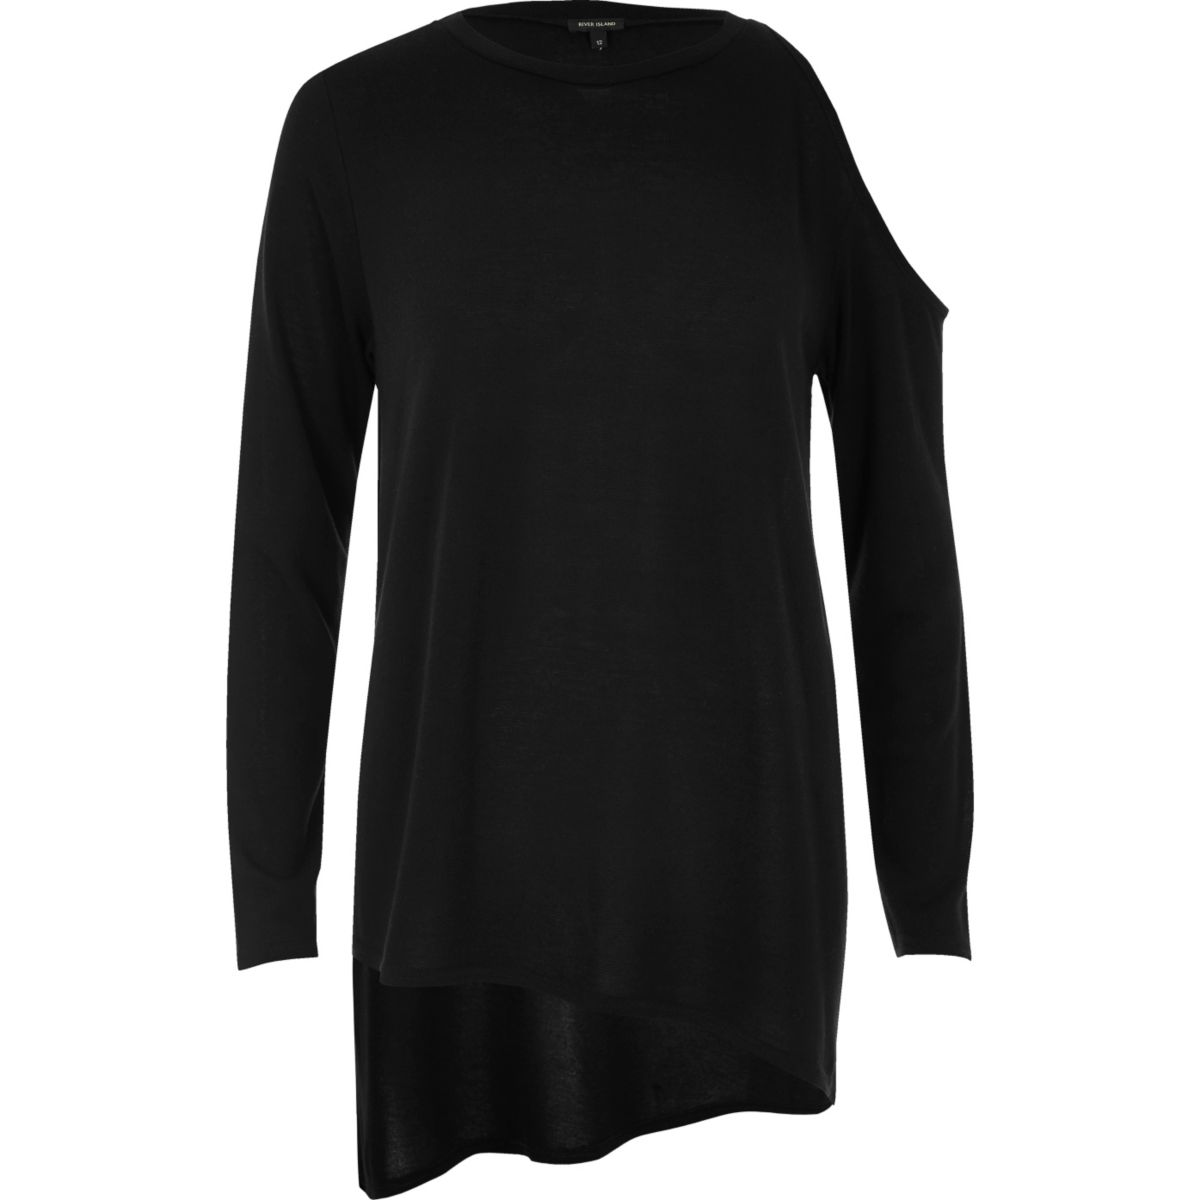 Black asymmetric cold shoulder top